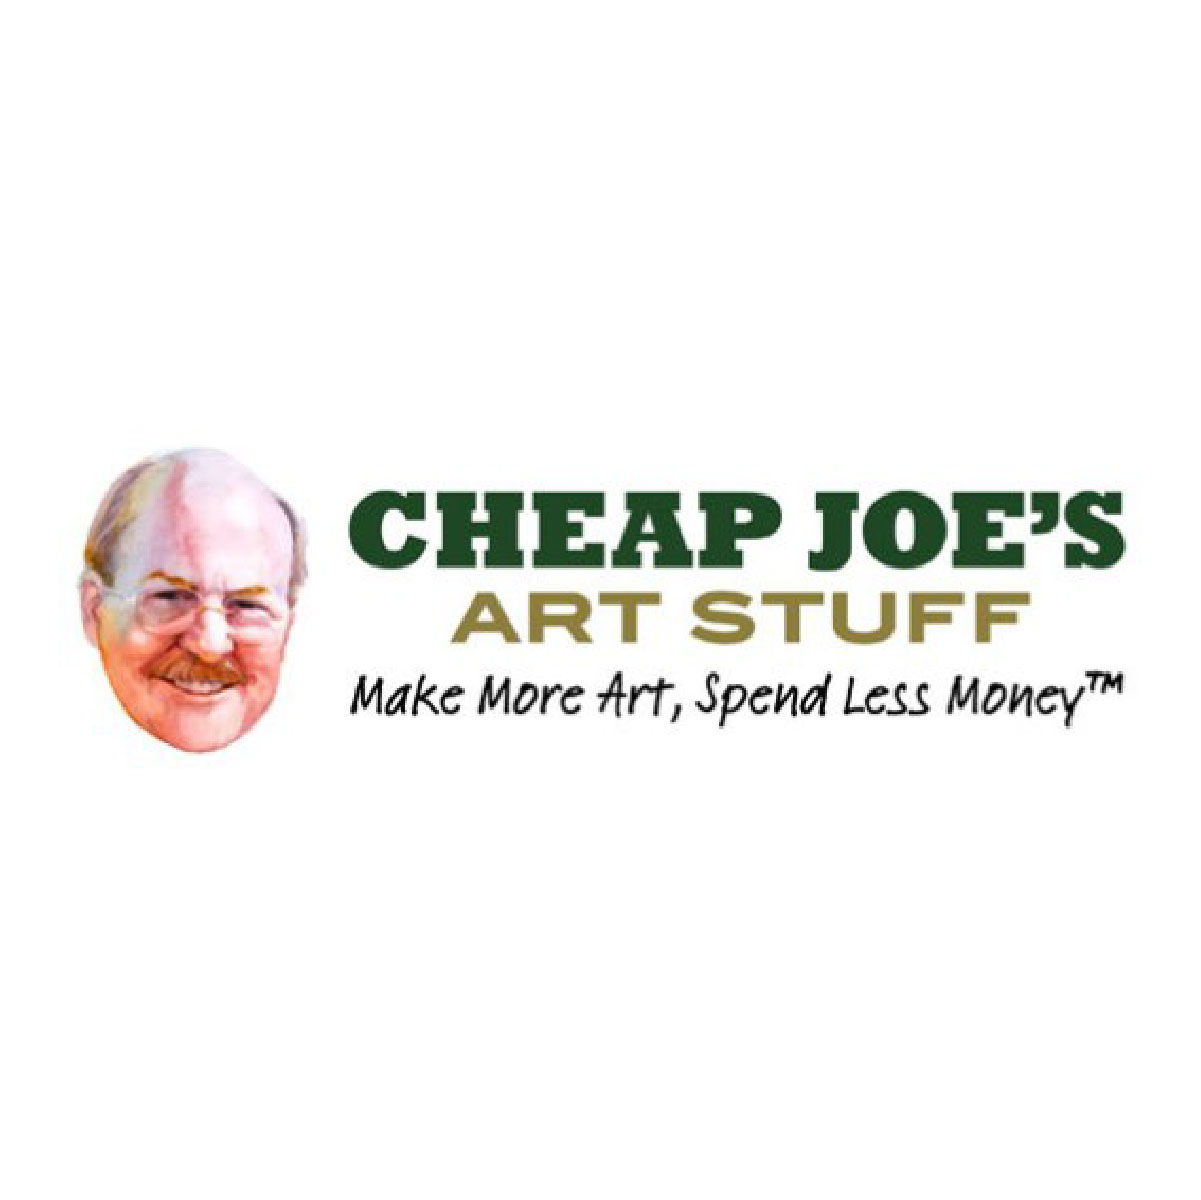 Cheap Joe's As you may know, cheap joe's is located down the street! they offer a 10% discount for being a C3 member.